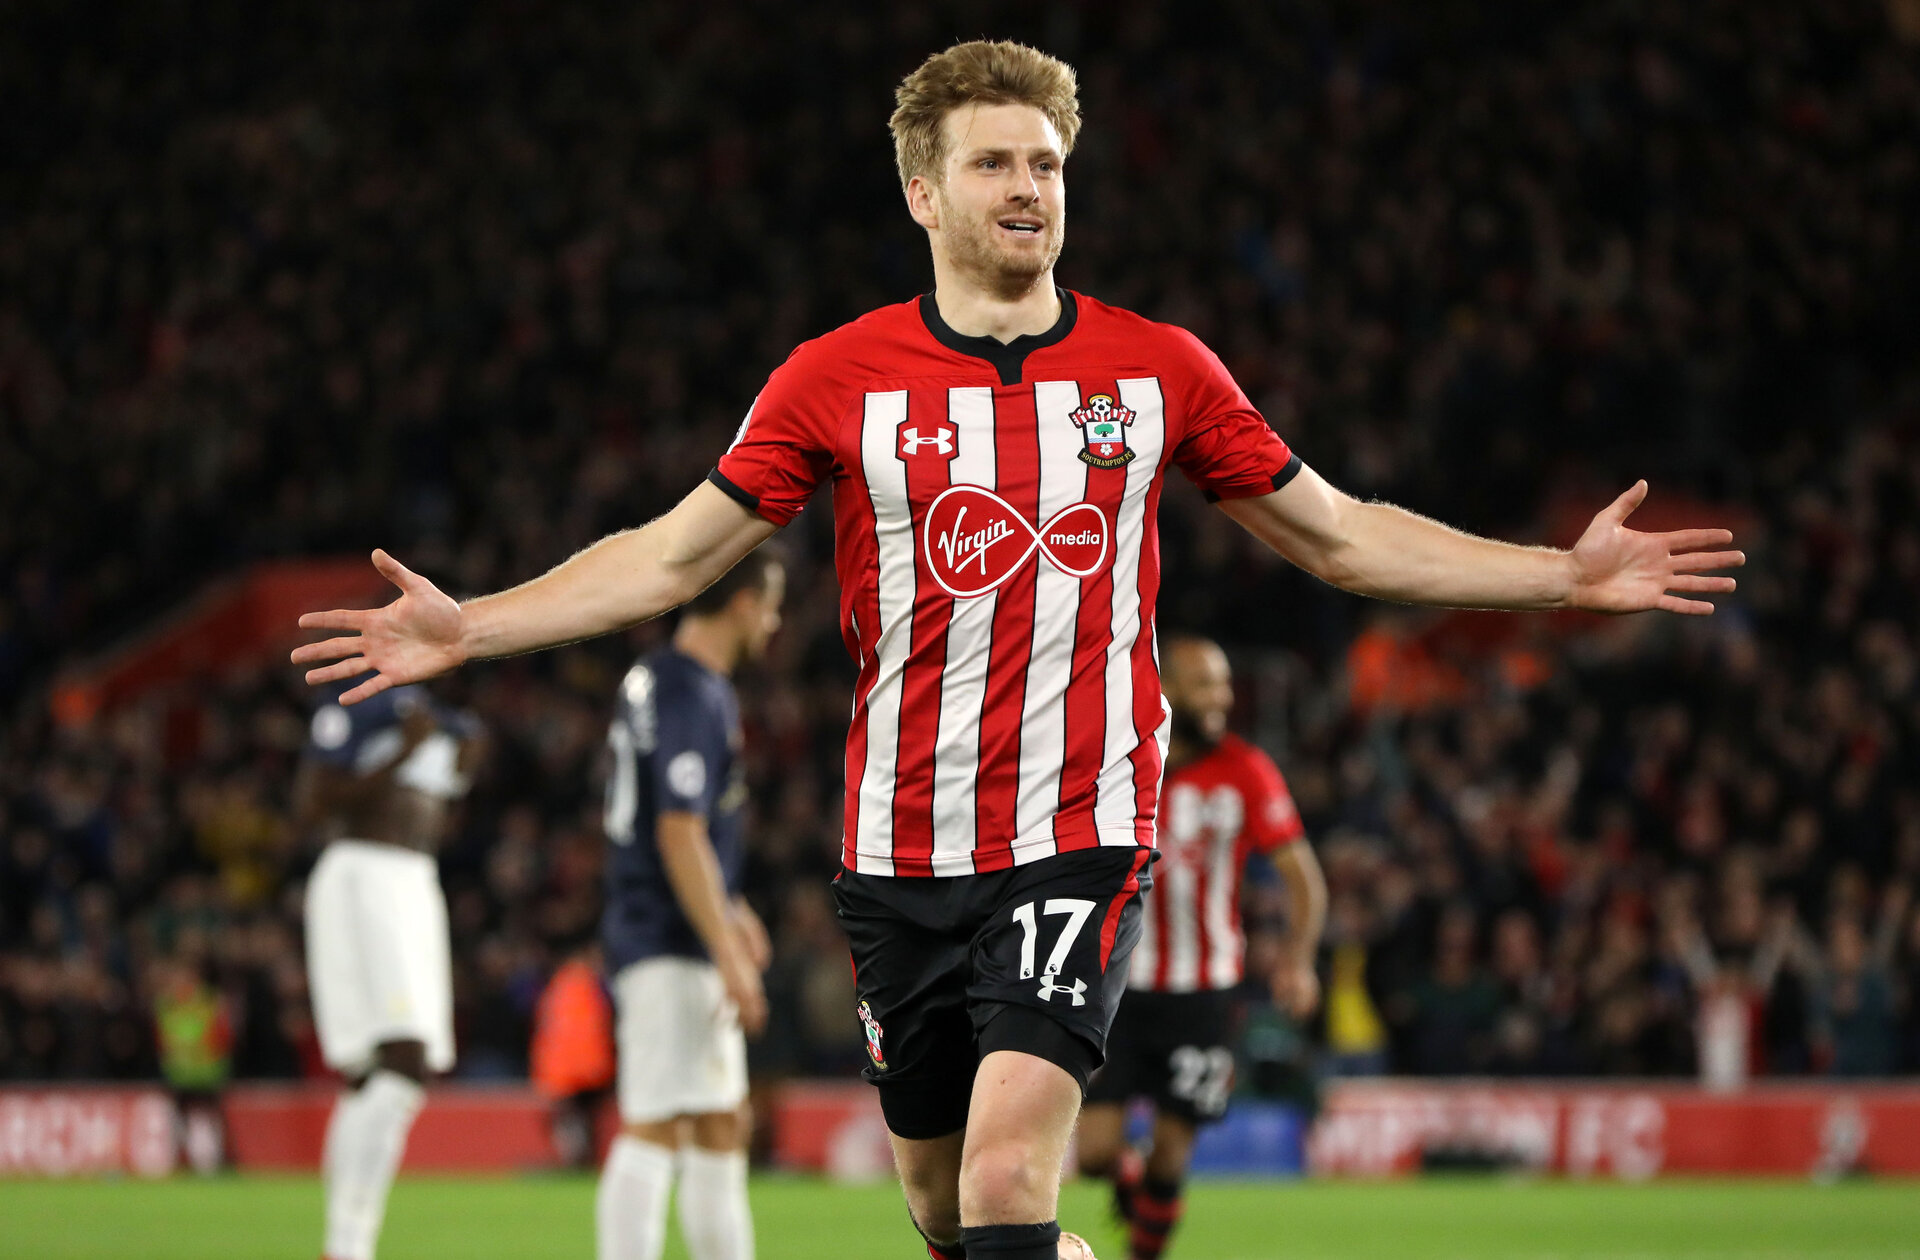 SOUTHAMPTON, ENGLAND - DECEMBER 01: Stuart Armstrong of Southampton celebrates his goal during the Premier League match between Southampton FC and Manchester United at St Mary's Stadium on December 1, 2018 in Southampton, United Kingdom. (Photo by Chris Moorhouse/Southampton FC via Getty Images)